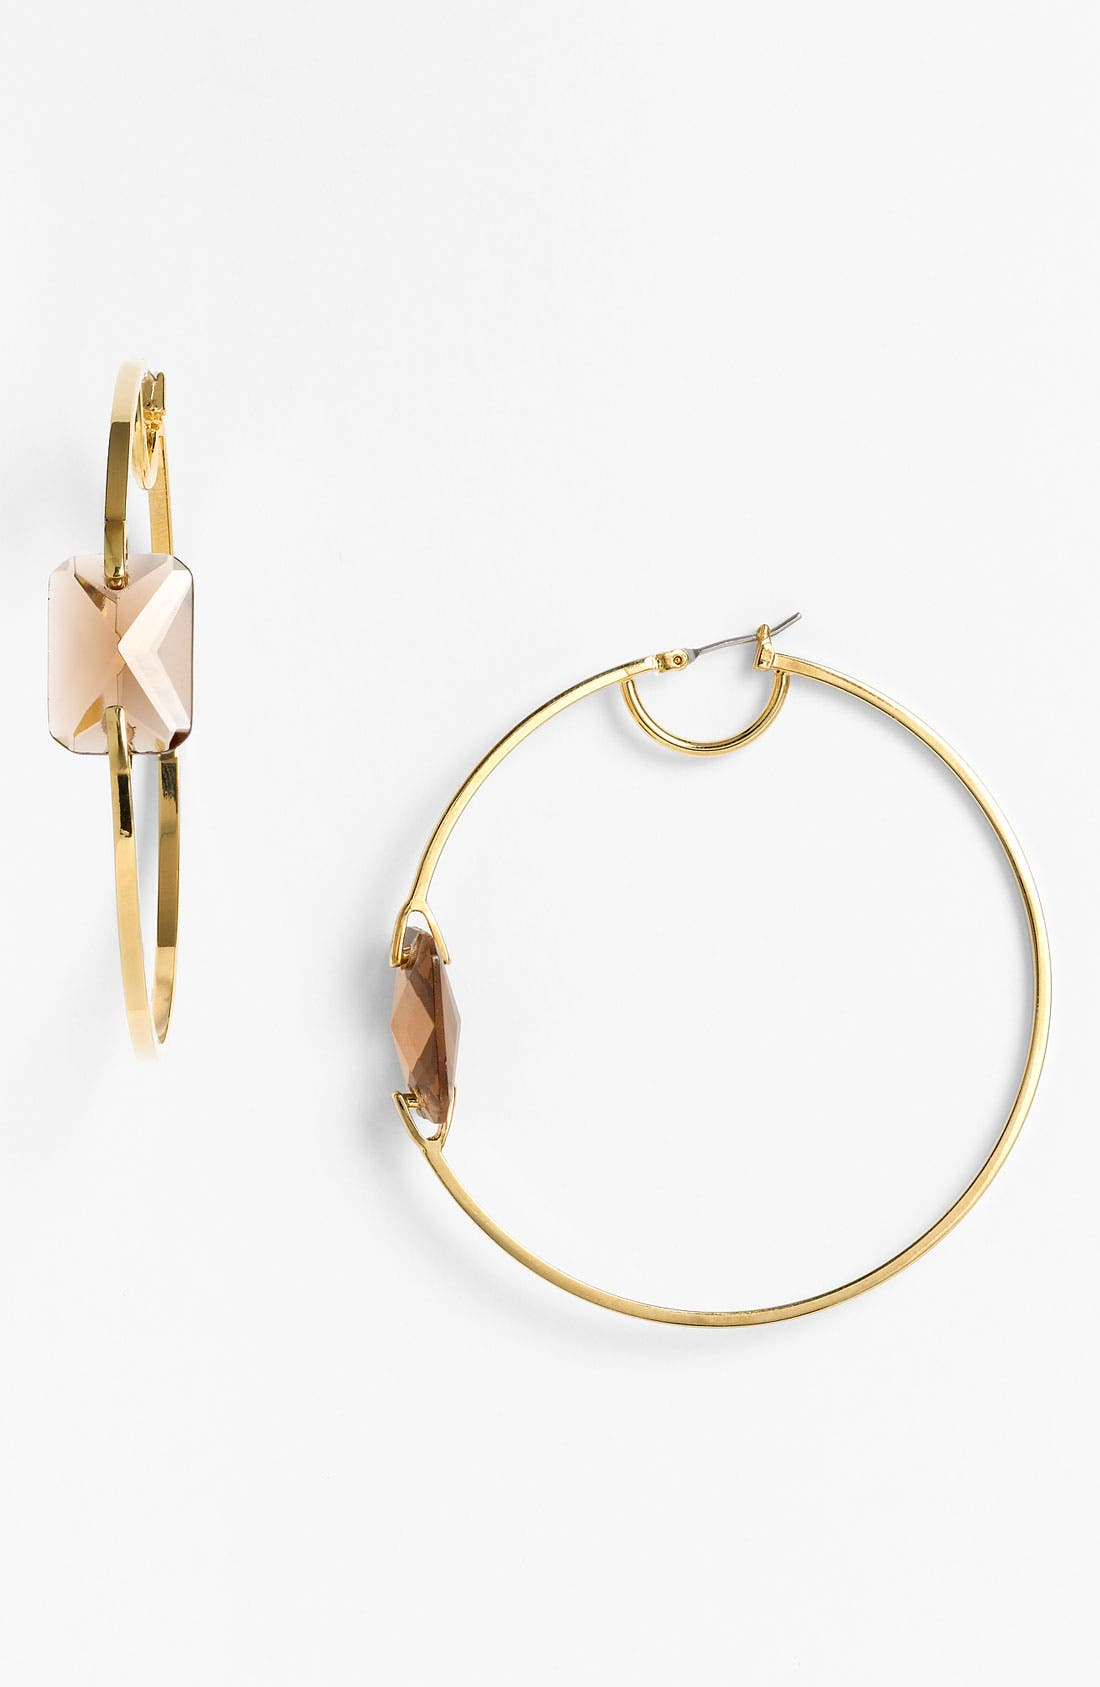 Alternate Image 1 Selected - Vince Camuto 'Basics' Stone Hoop Earrings